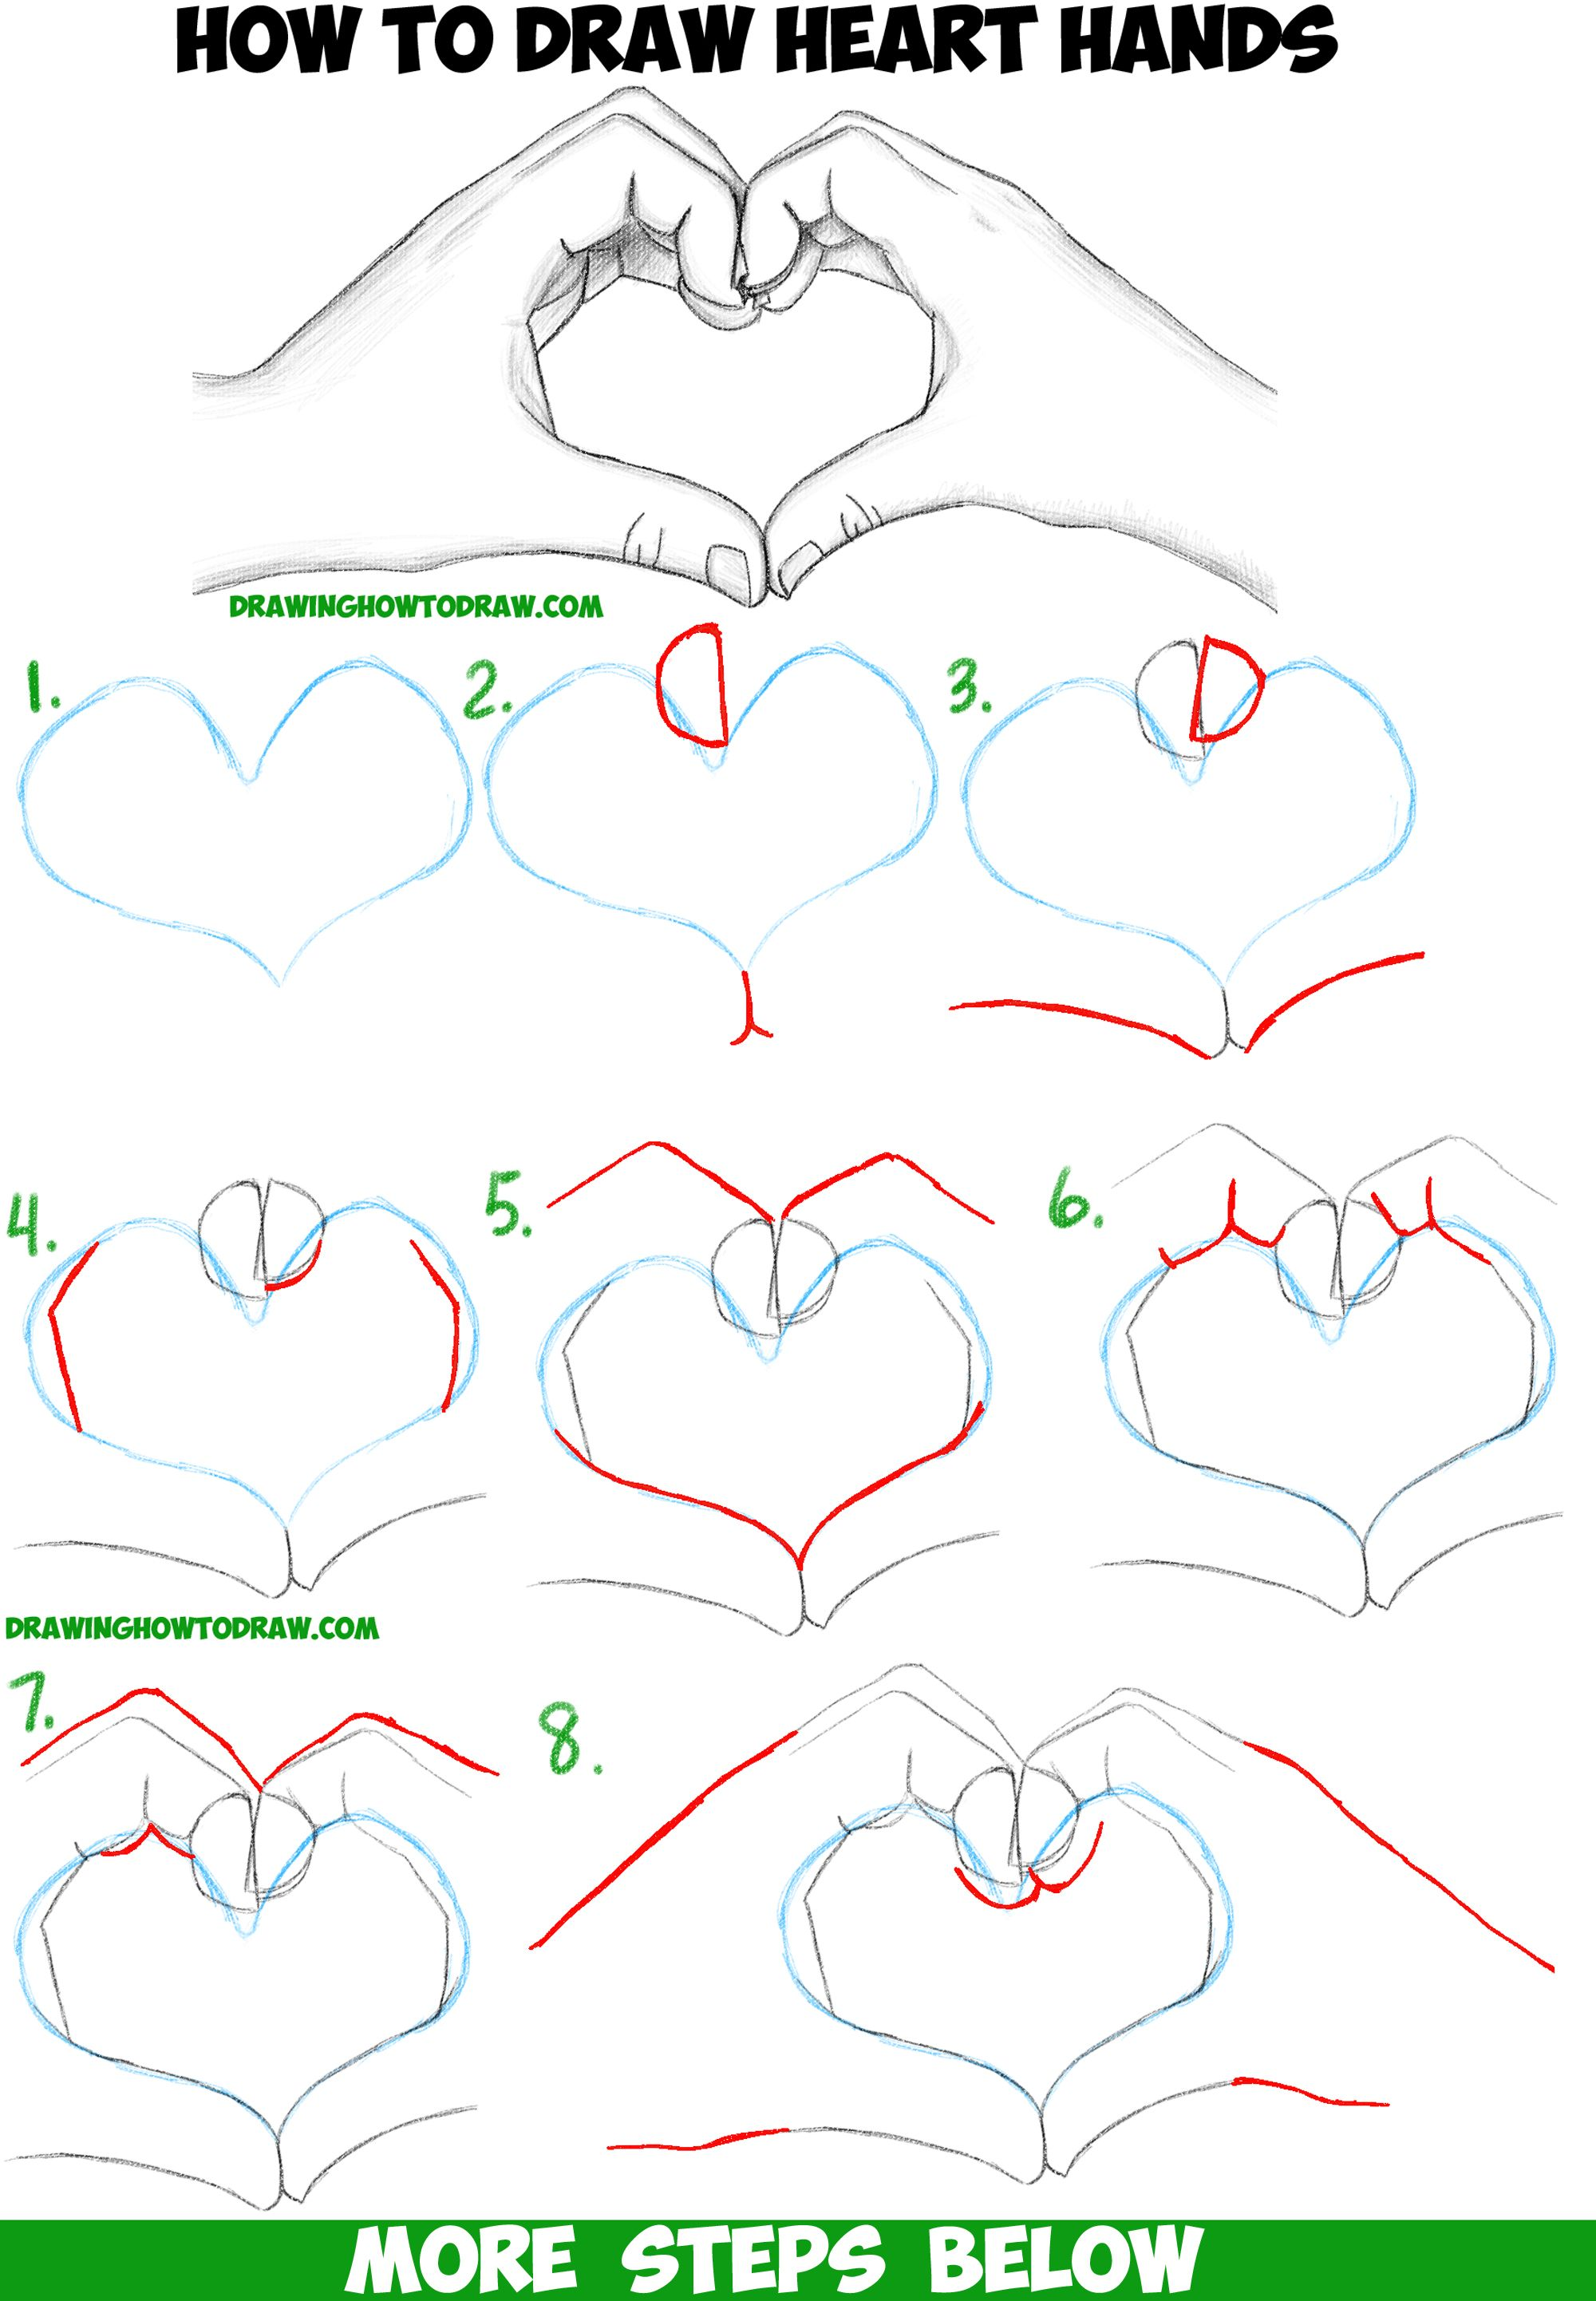 Draw Heart Hands In Easy To Follow Step